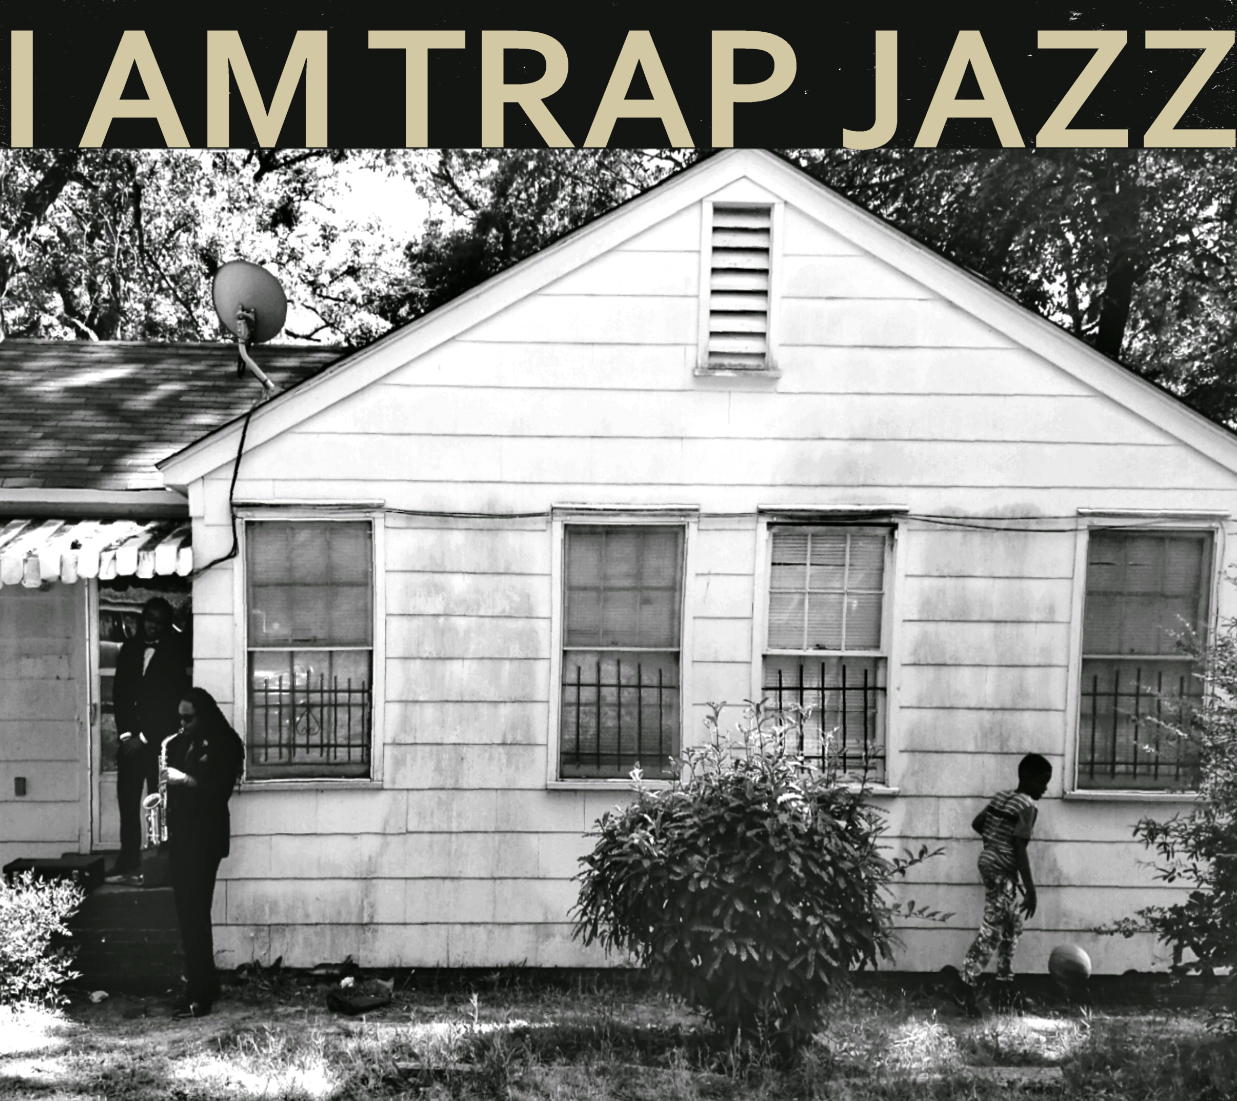 I am TrapJazz album cover